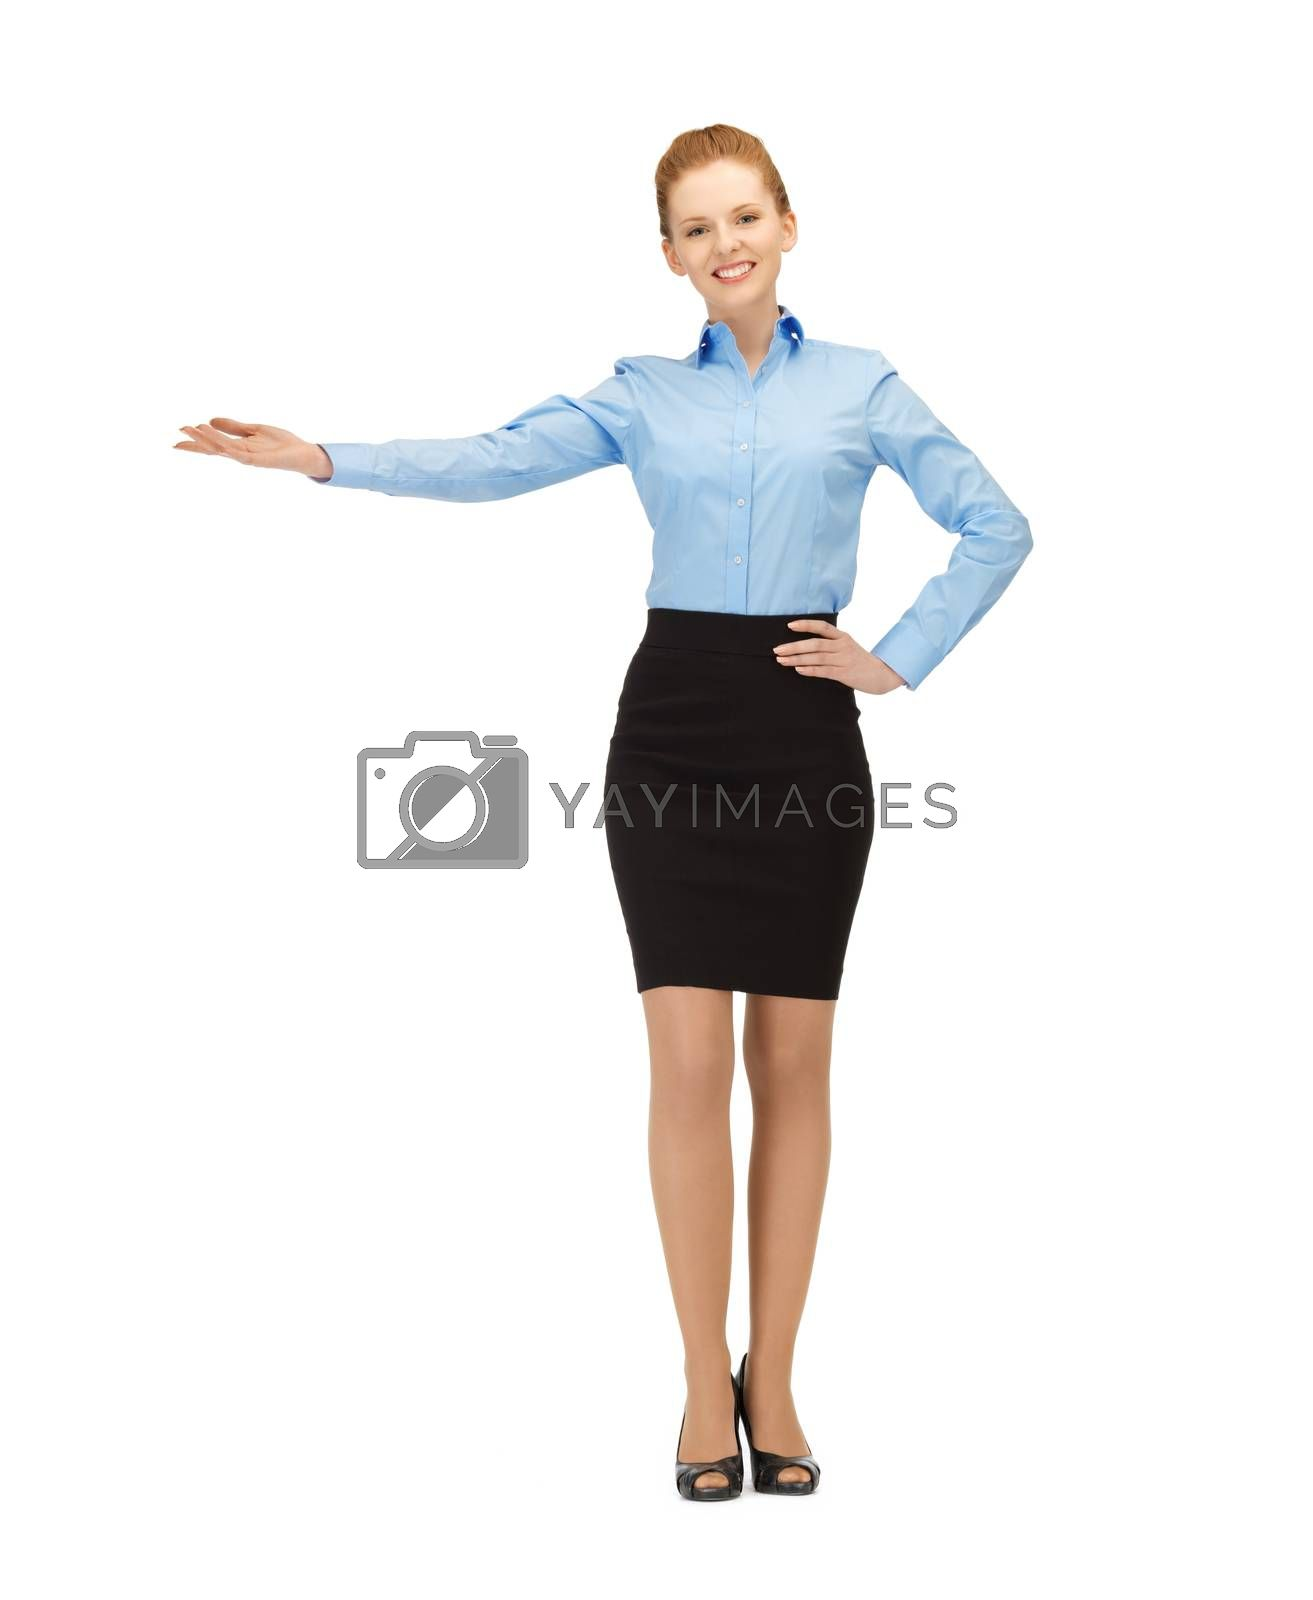 businesswoman showing something with her hand by dolgachov